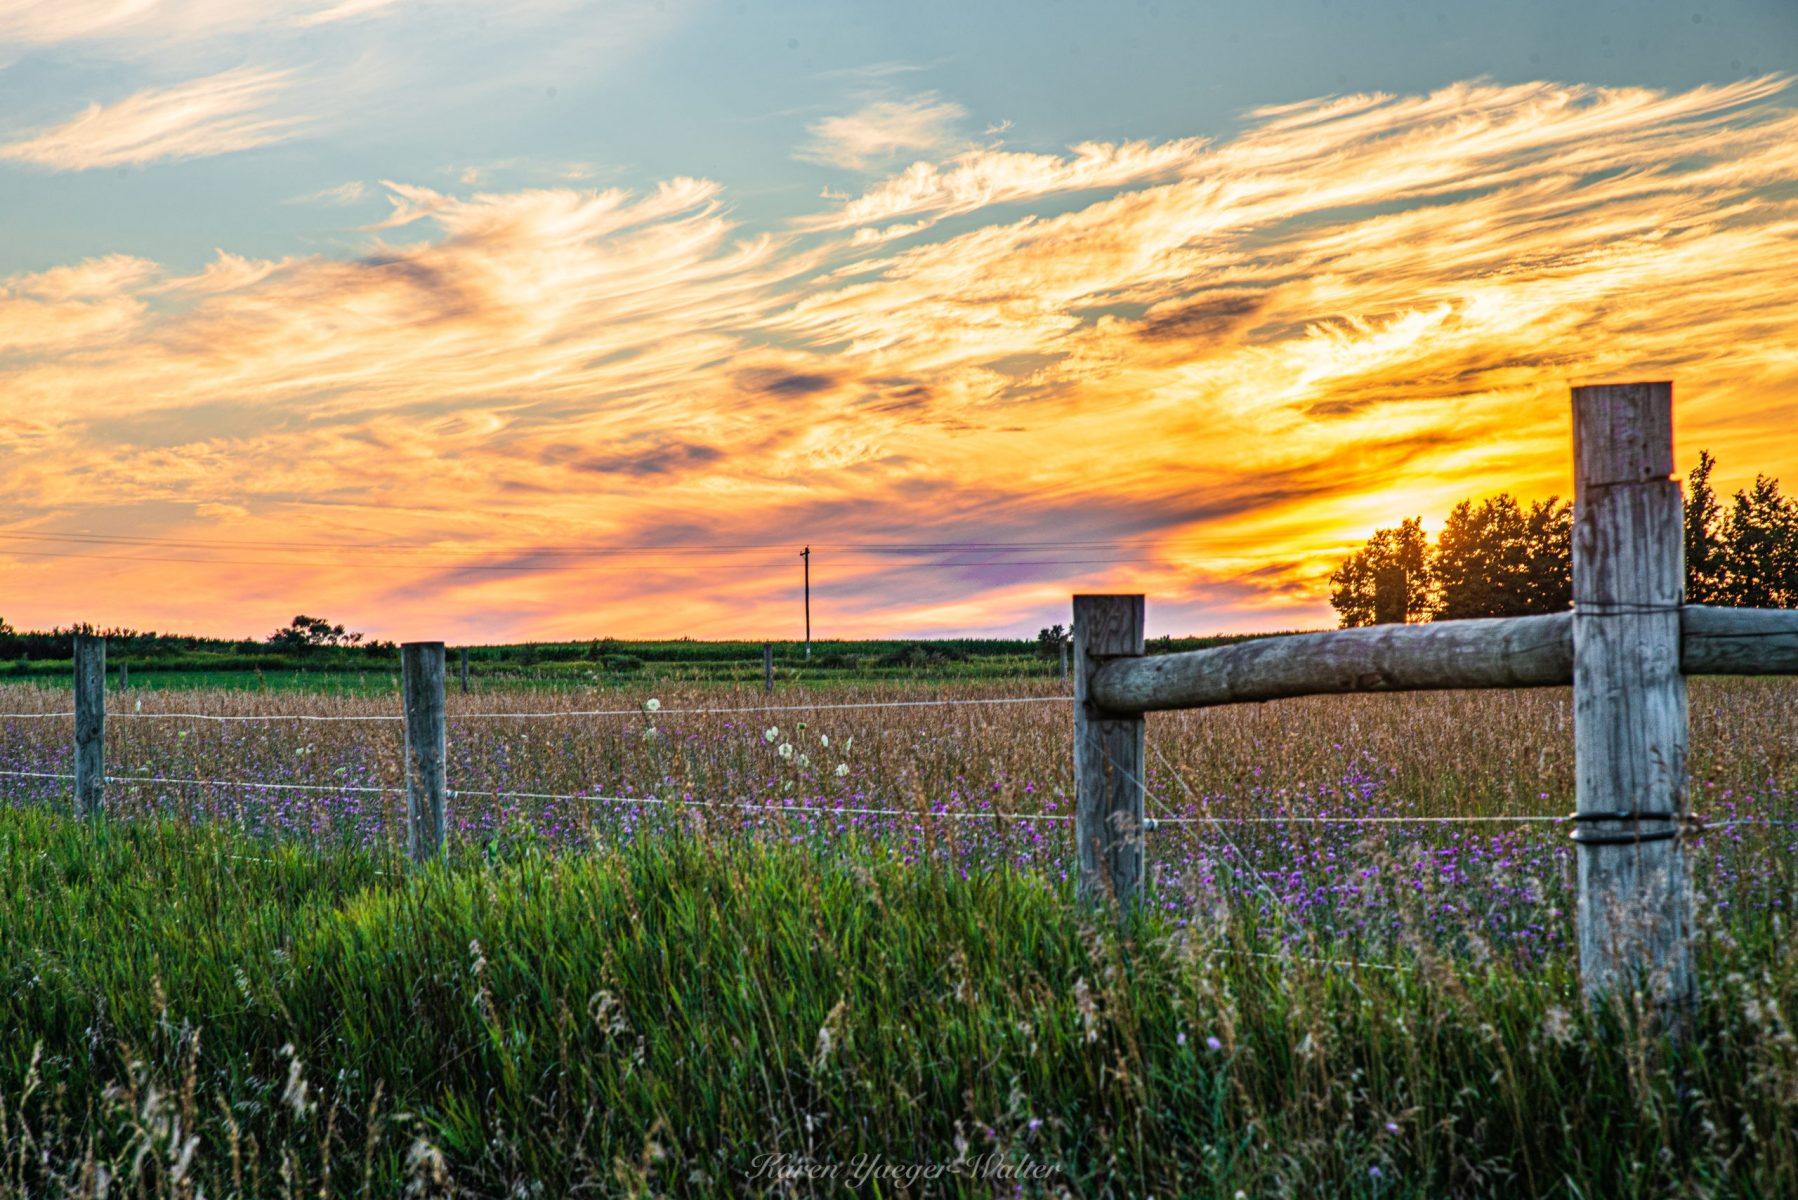 Karen Walter, Farm Field Sunset Muskegon County